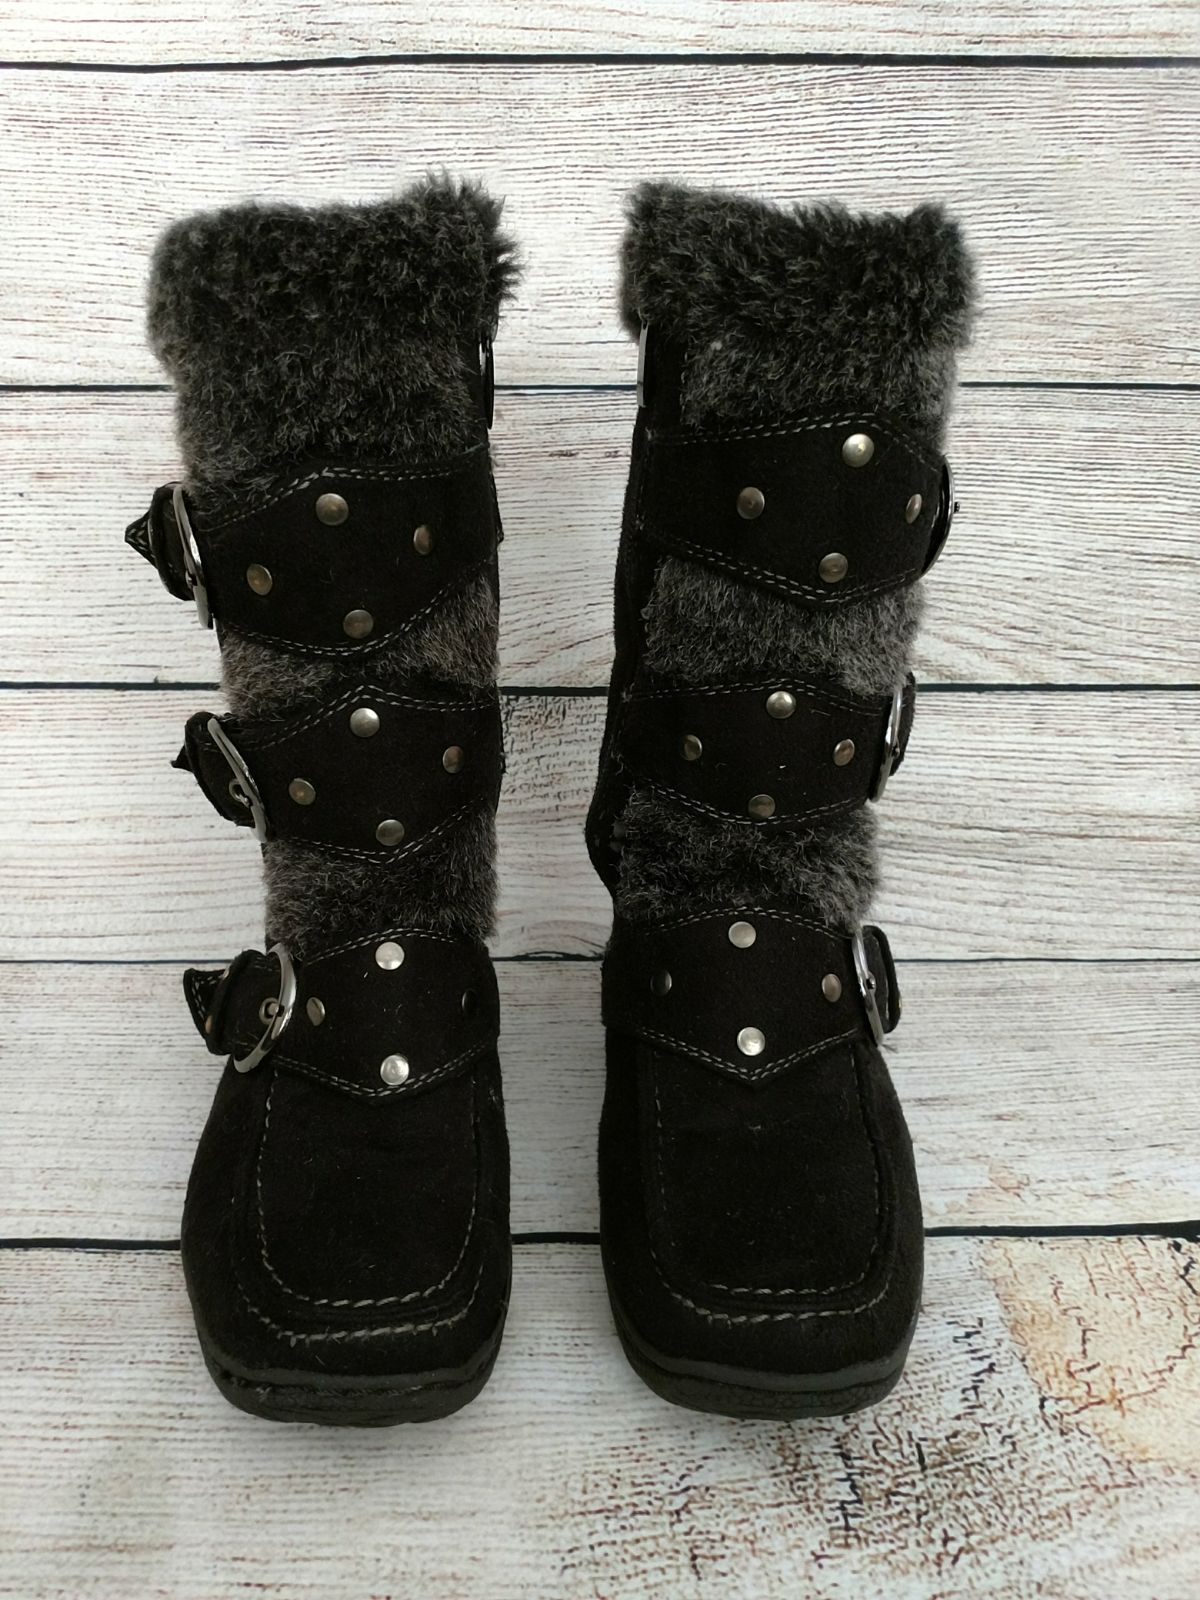 Lucky Top black girls suede boots size 9